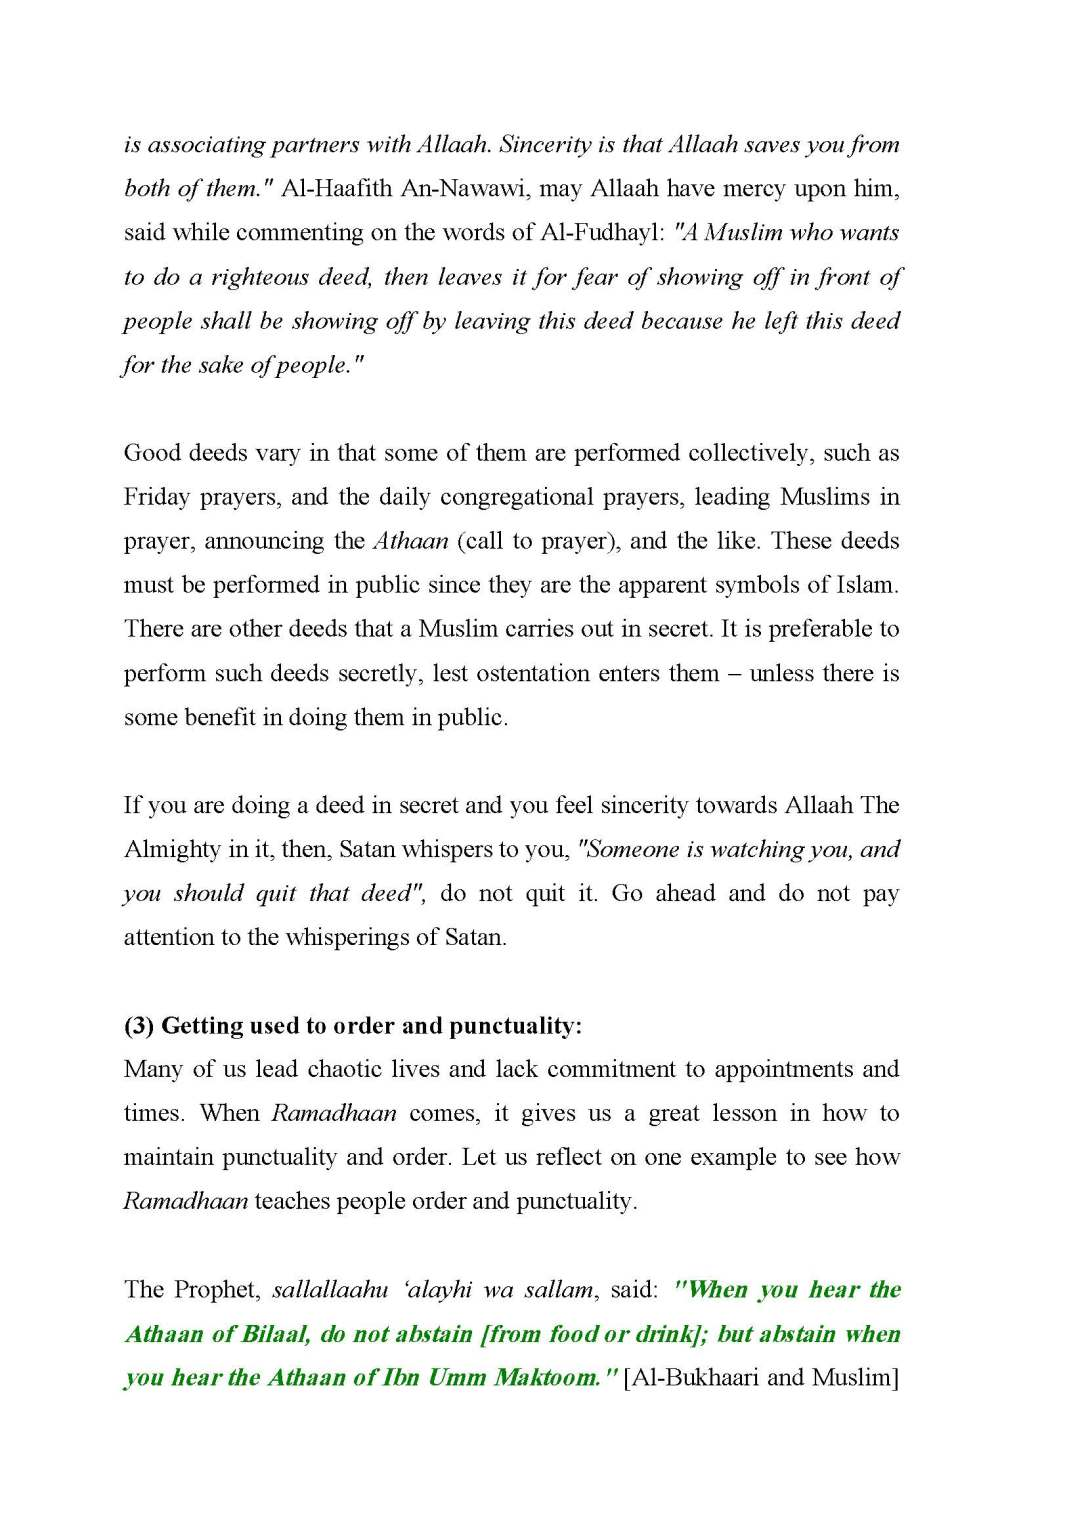 Benefits_and_Secrets_of_Fasting_Page_12